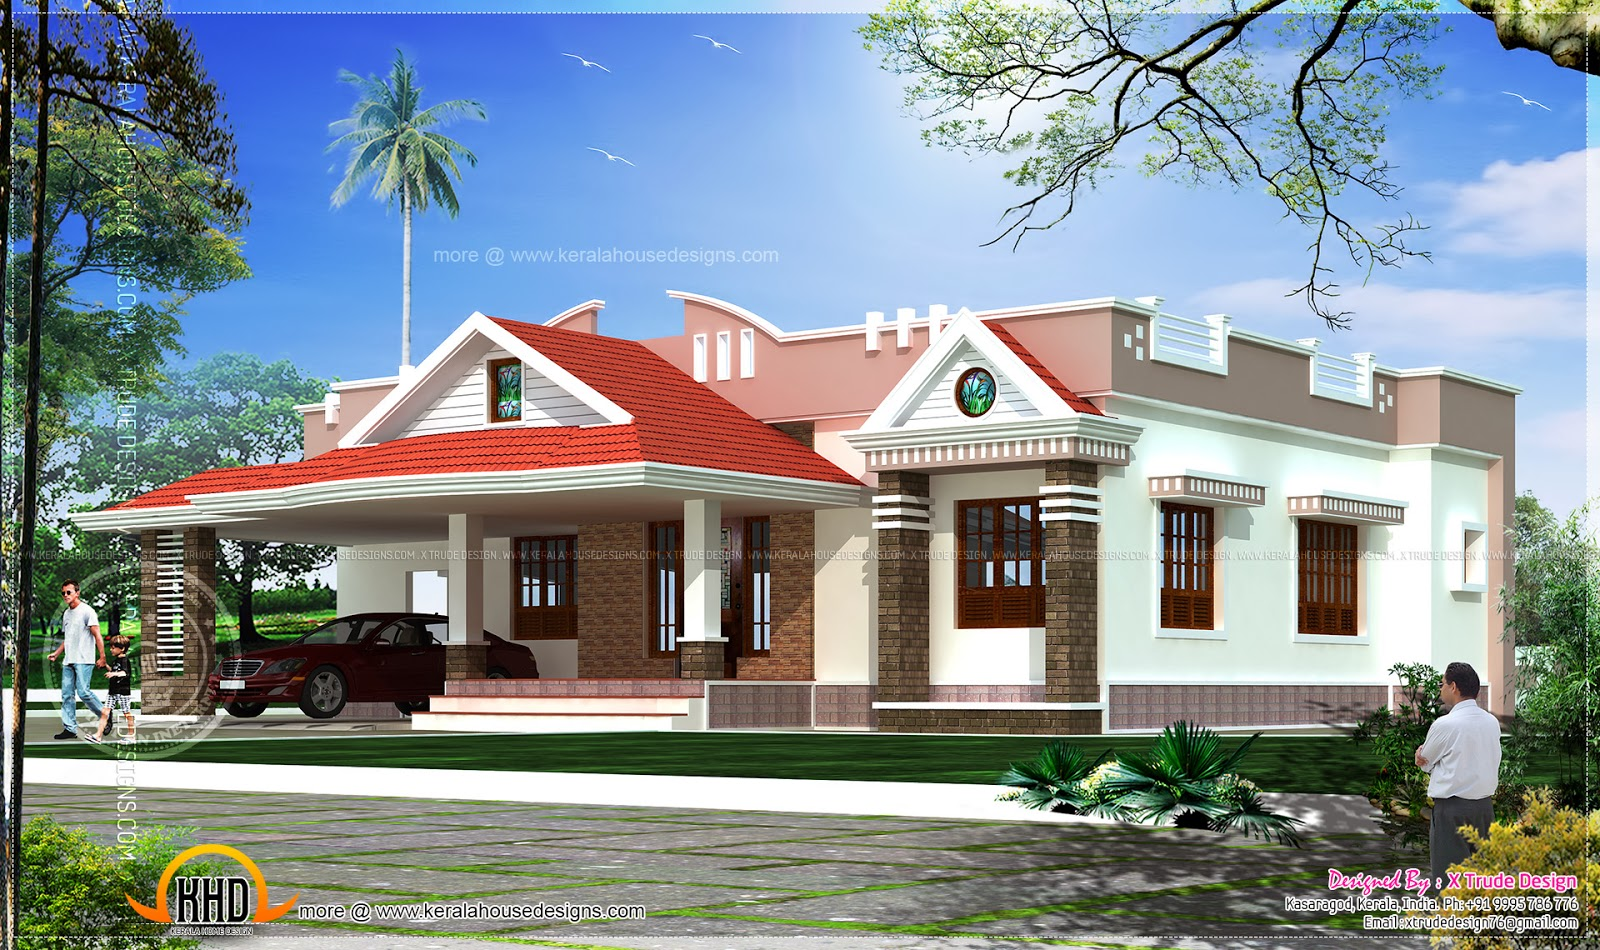 Single storied 2 bedroom house elevation kerala home for Single floor house elevations indian style